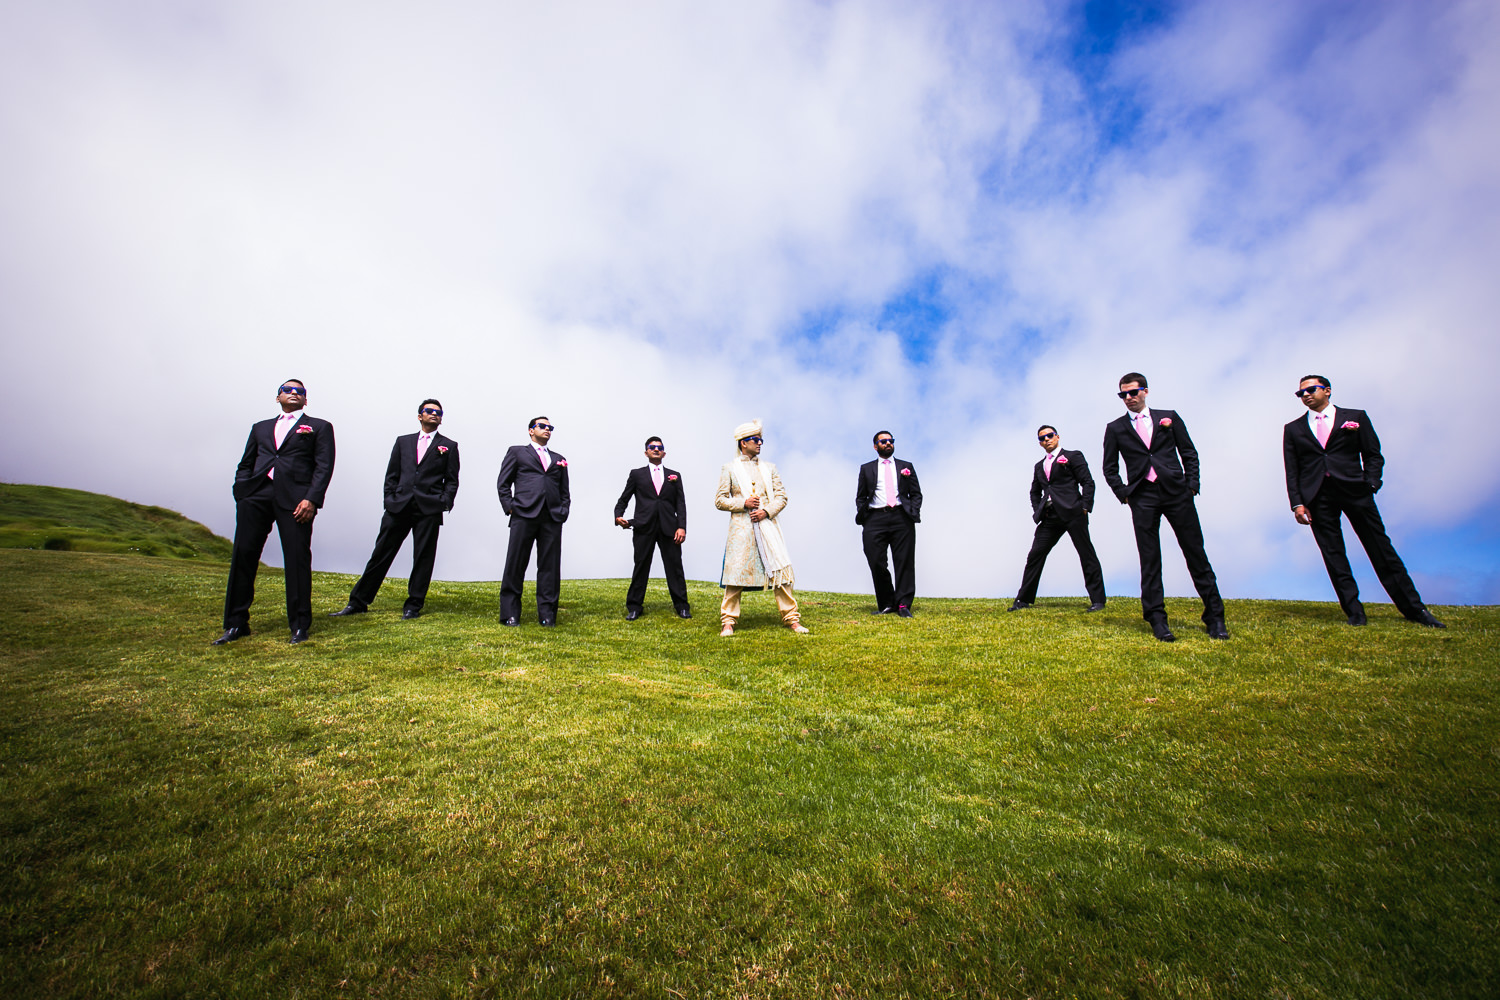 Trump National Golf Club Wedding - Groom with Groomsmen